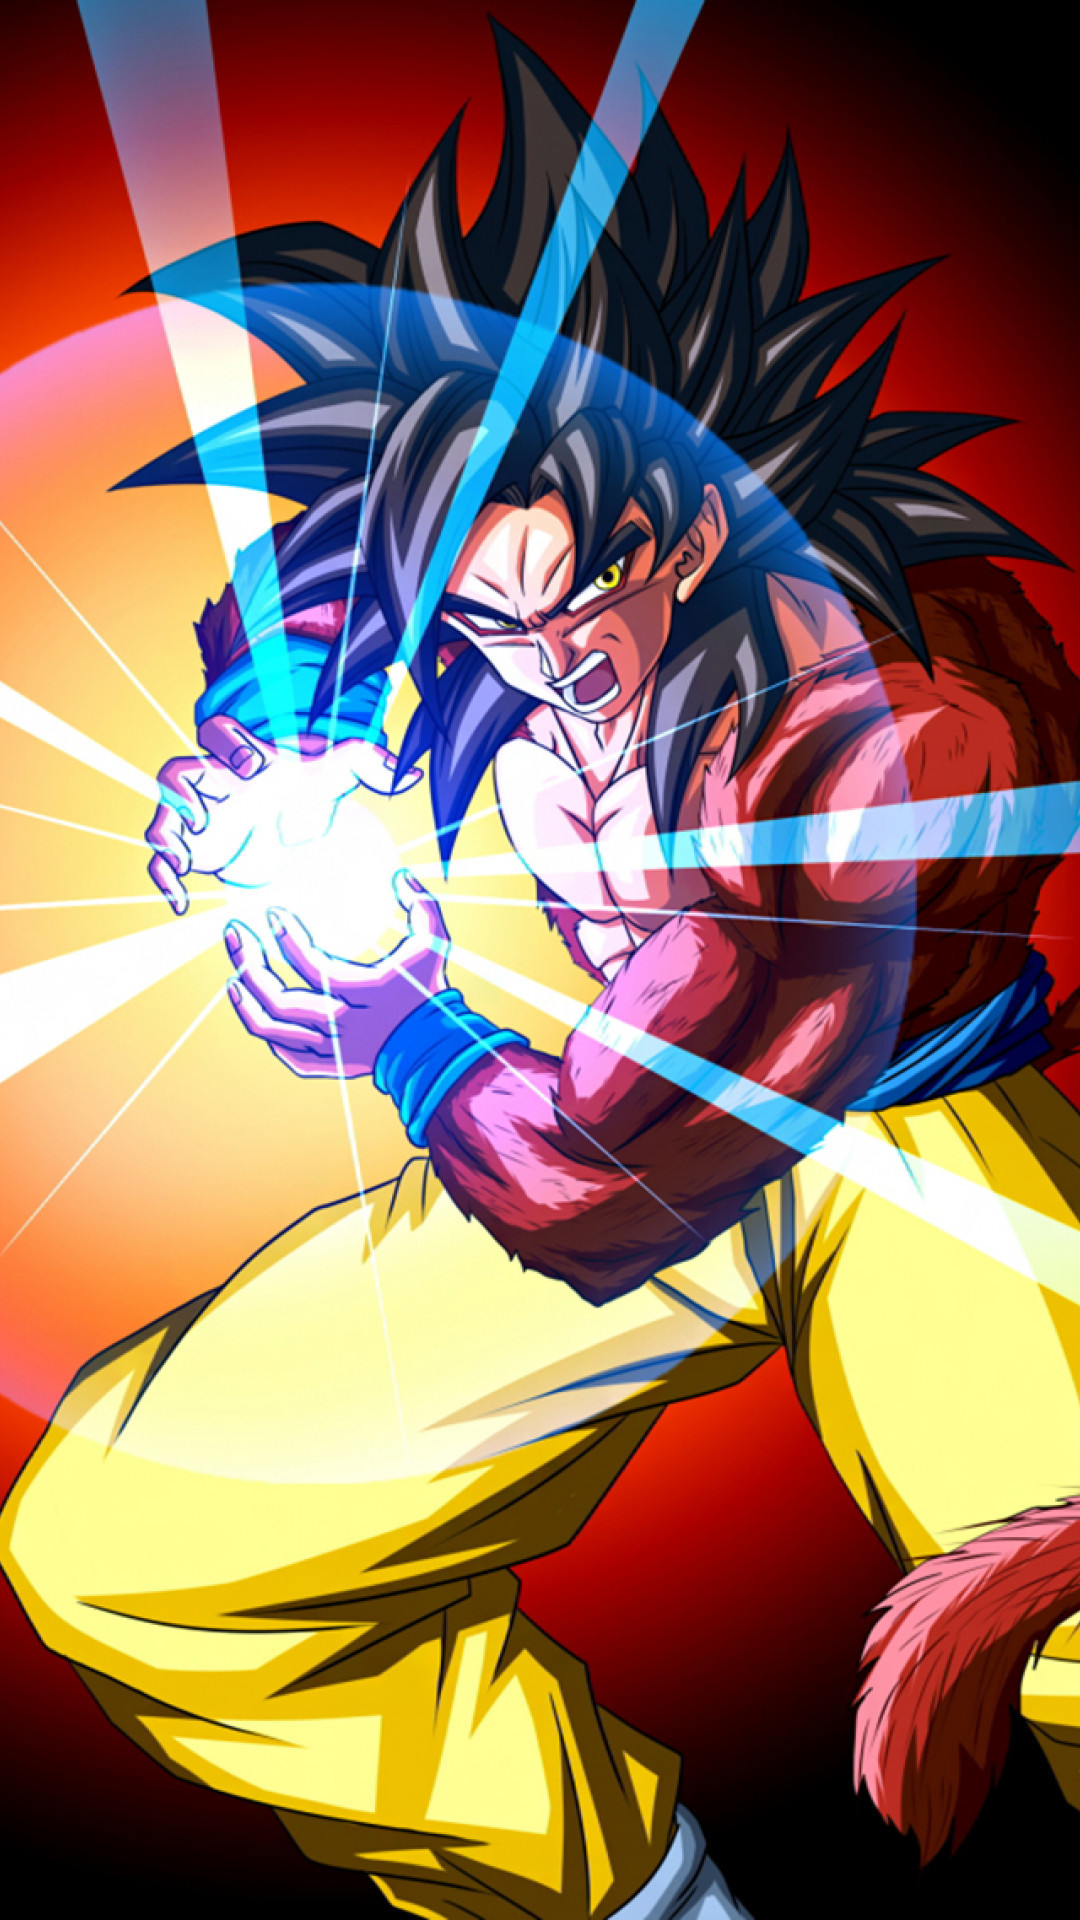 Super Saiyan 4 Son Goku. Press the download button to save, or: Desktop  users – Right click to save or set as desktop background